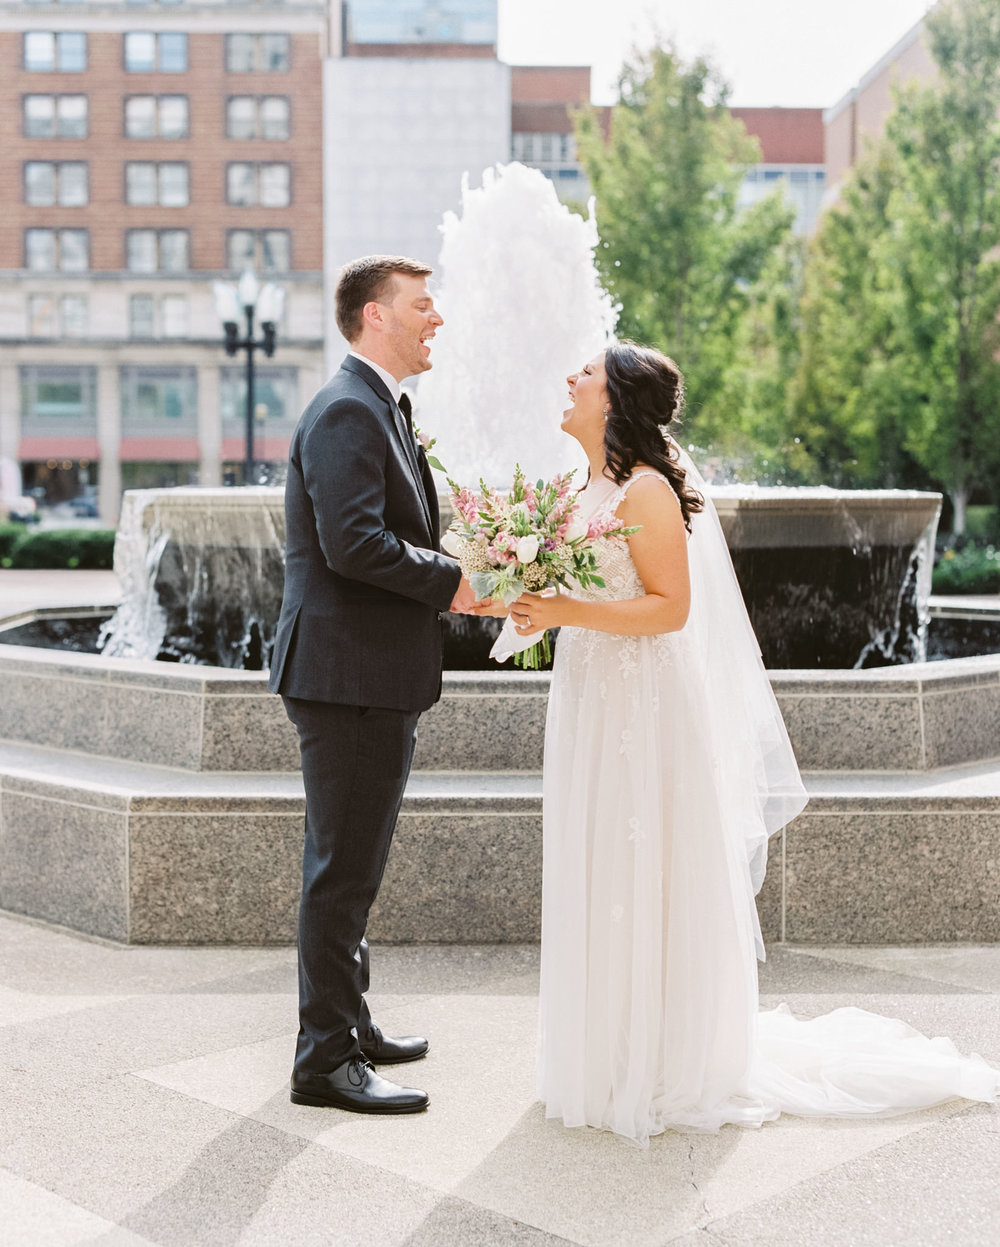 Bride with bouquet and groom laugh during first look